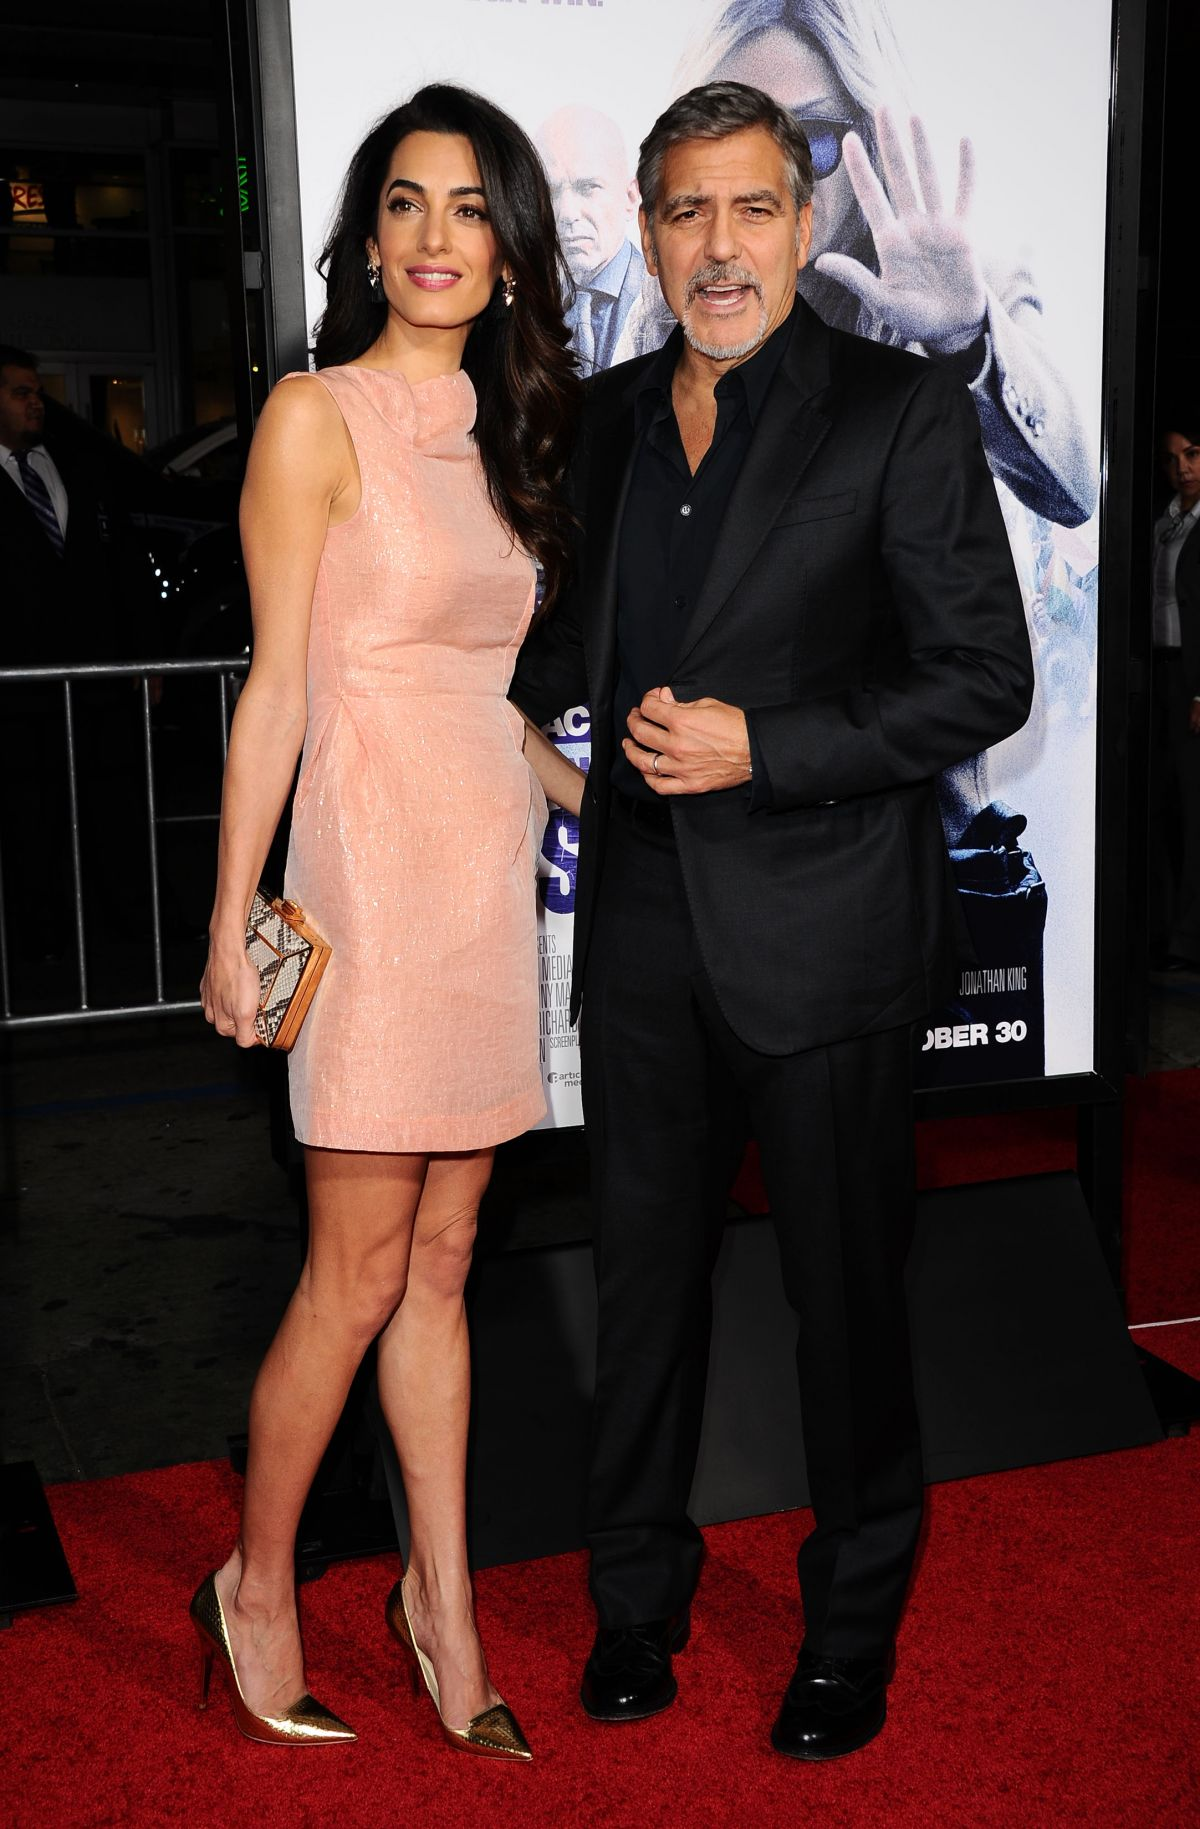 AMAL CLOONEY at Our Brand Is Crisis Premiere in Hollywood 10/26/2015